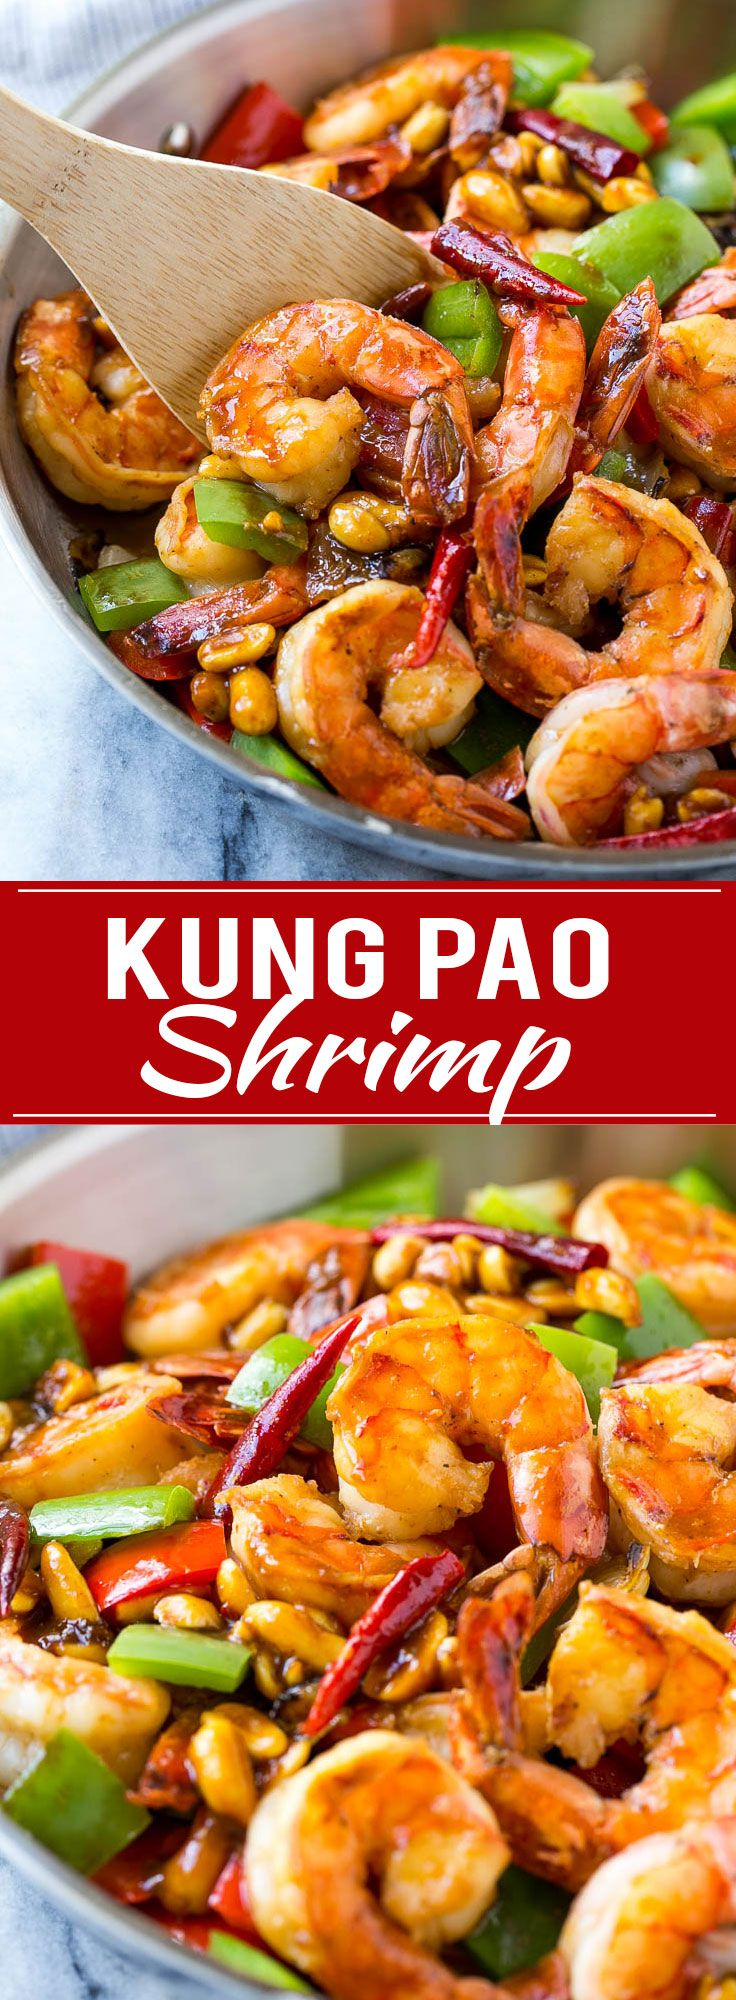 Kung Pao Shrimp Recipe | Shrimp Stir Fry | Spicy Shrimp | Healthy Shrimp Recipe | Chinese Food | Take Out